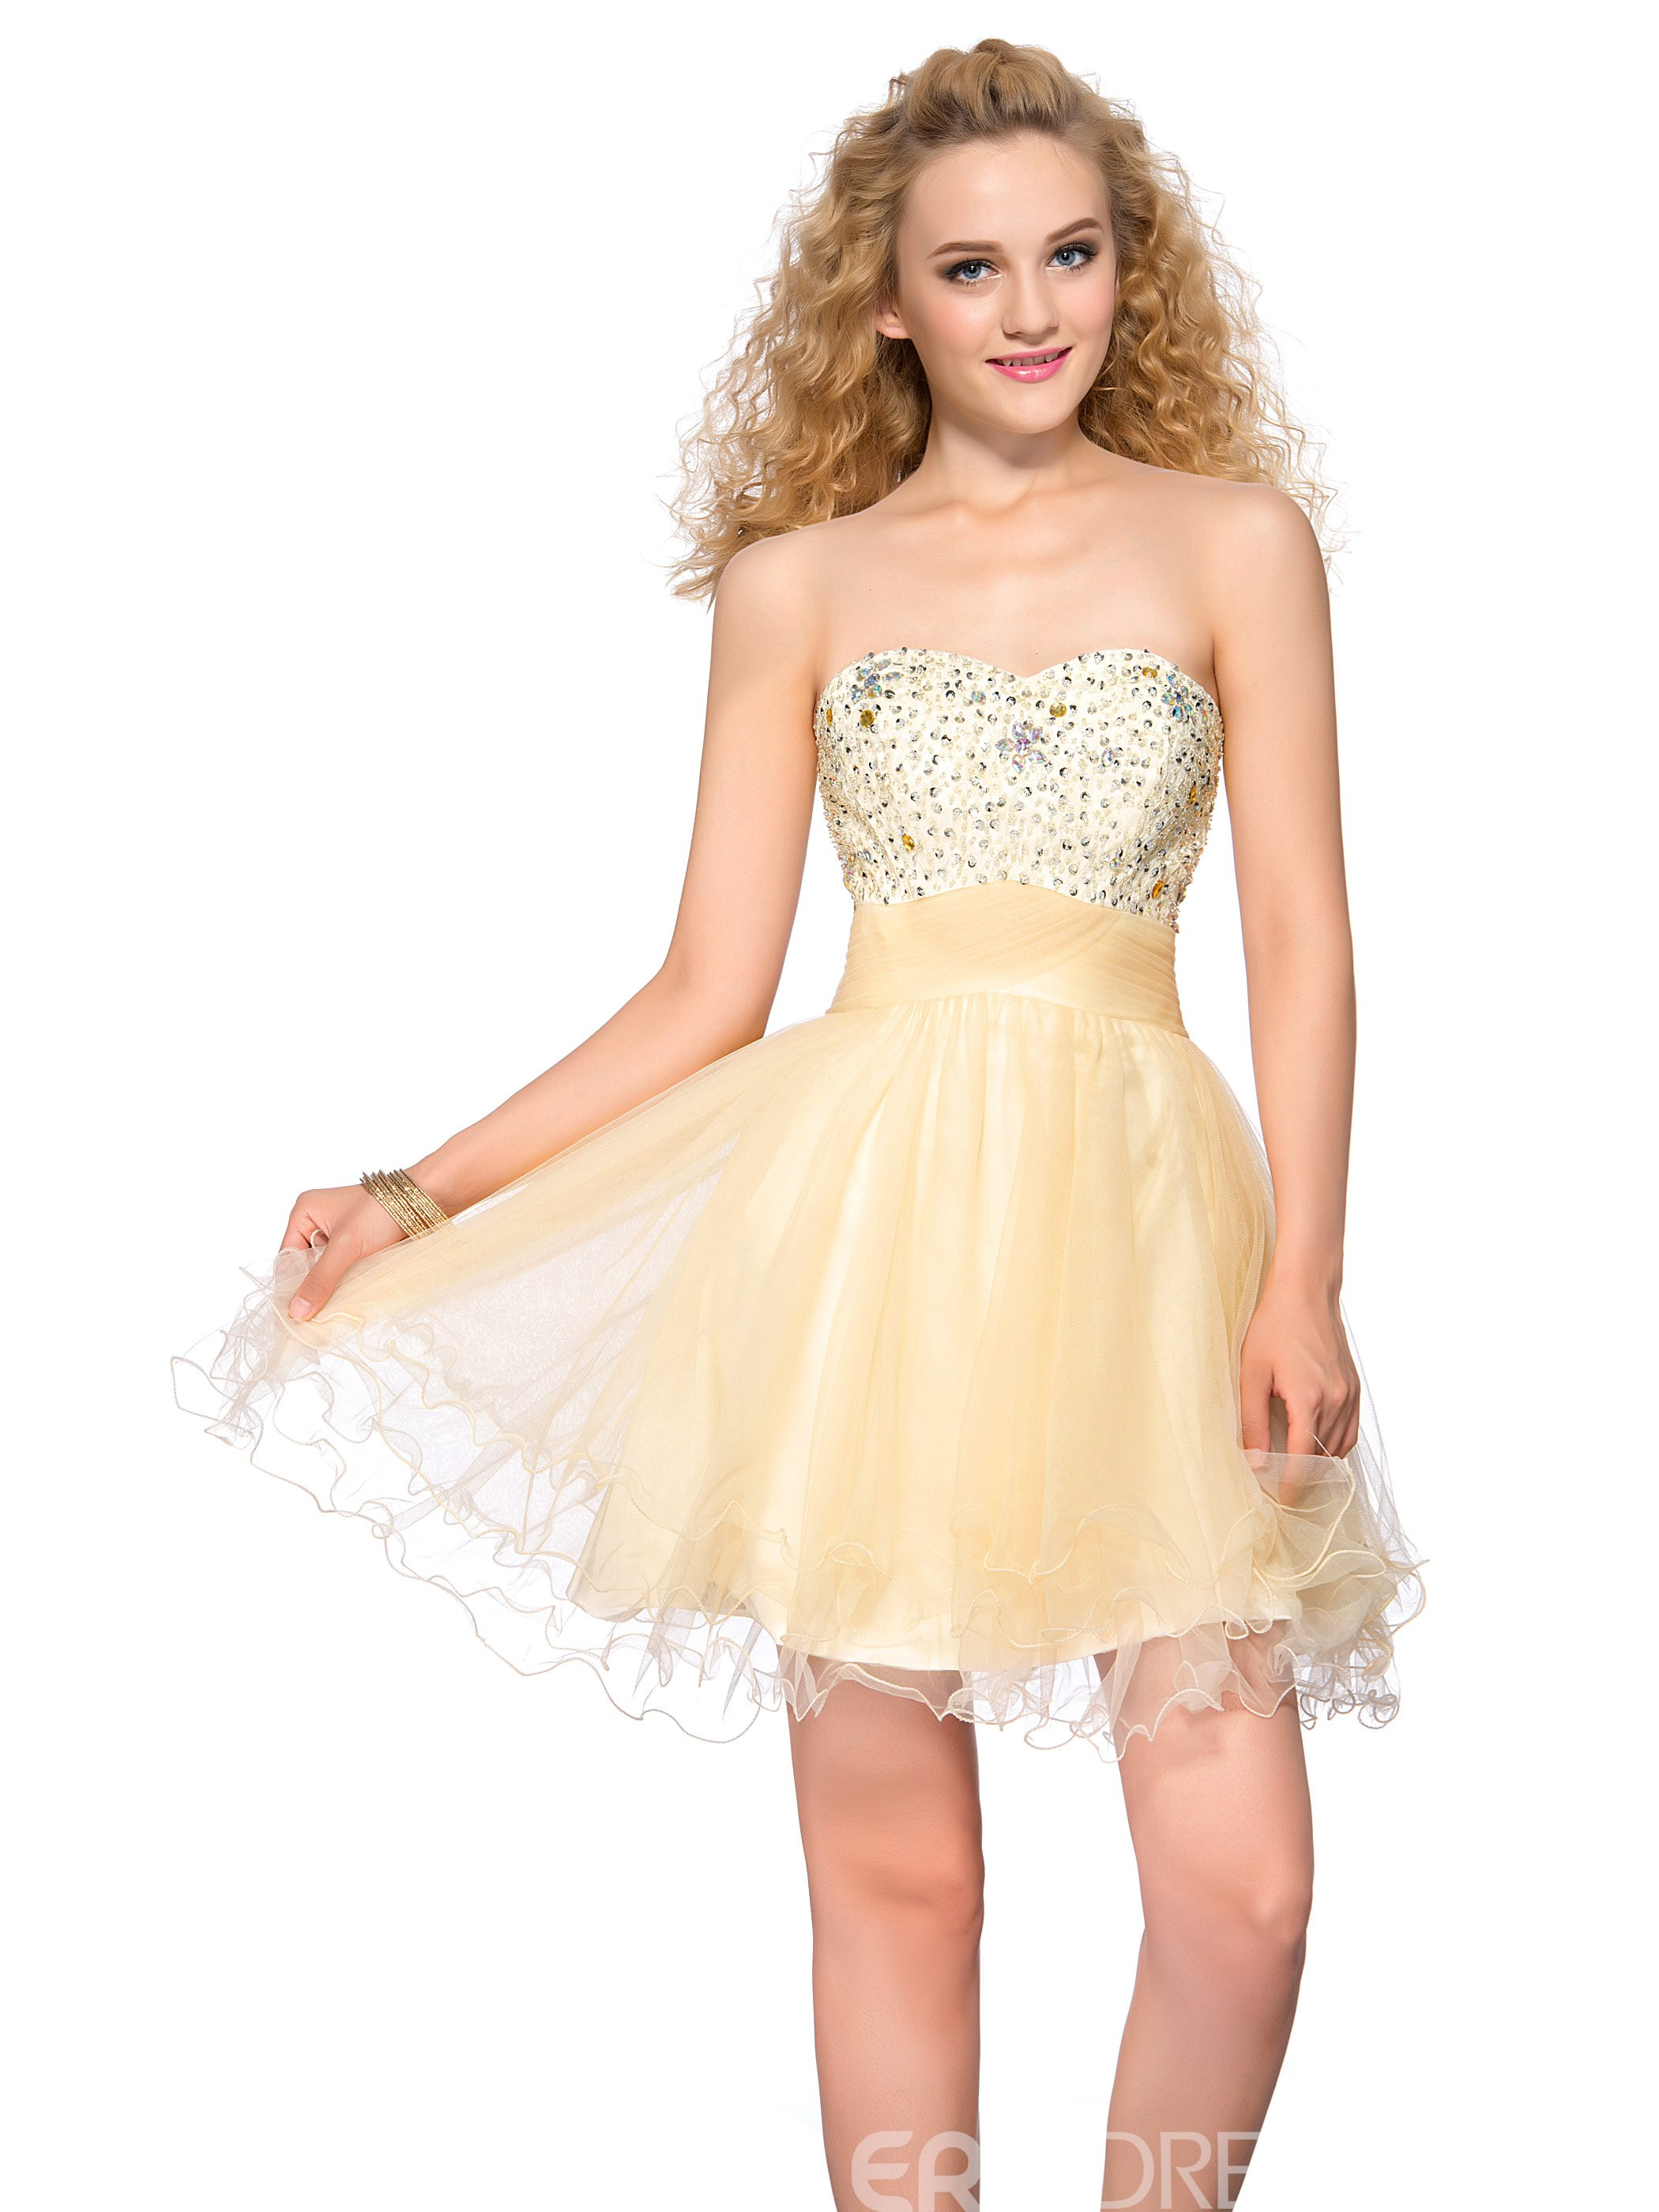 Smart Sweetheart Beading Sequins Lace-up Short Homecoming Dress